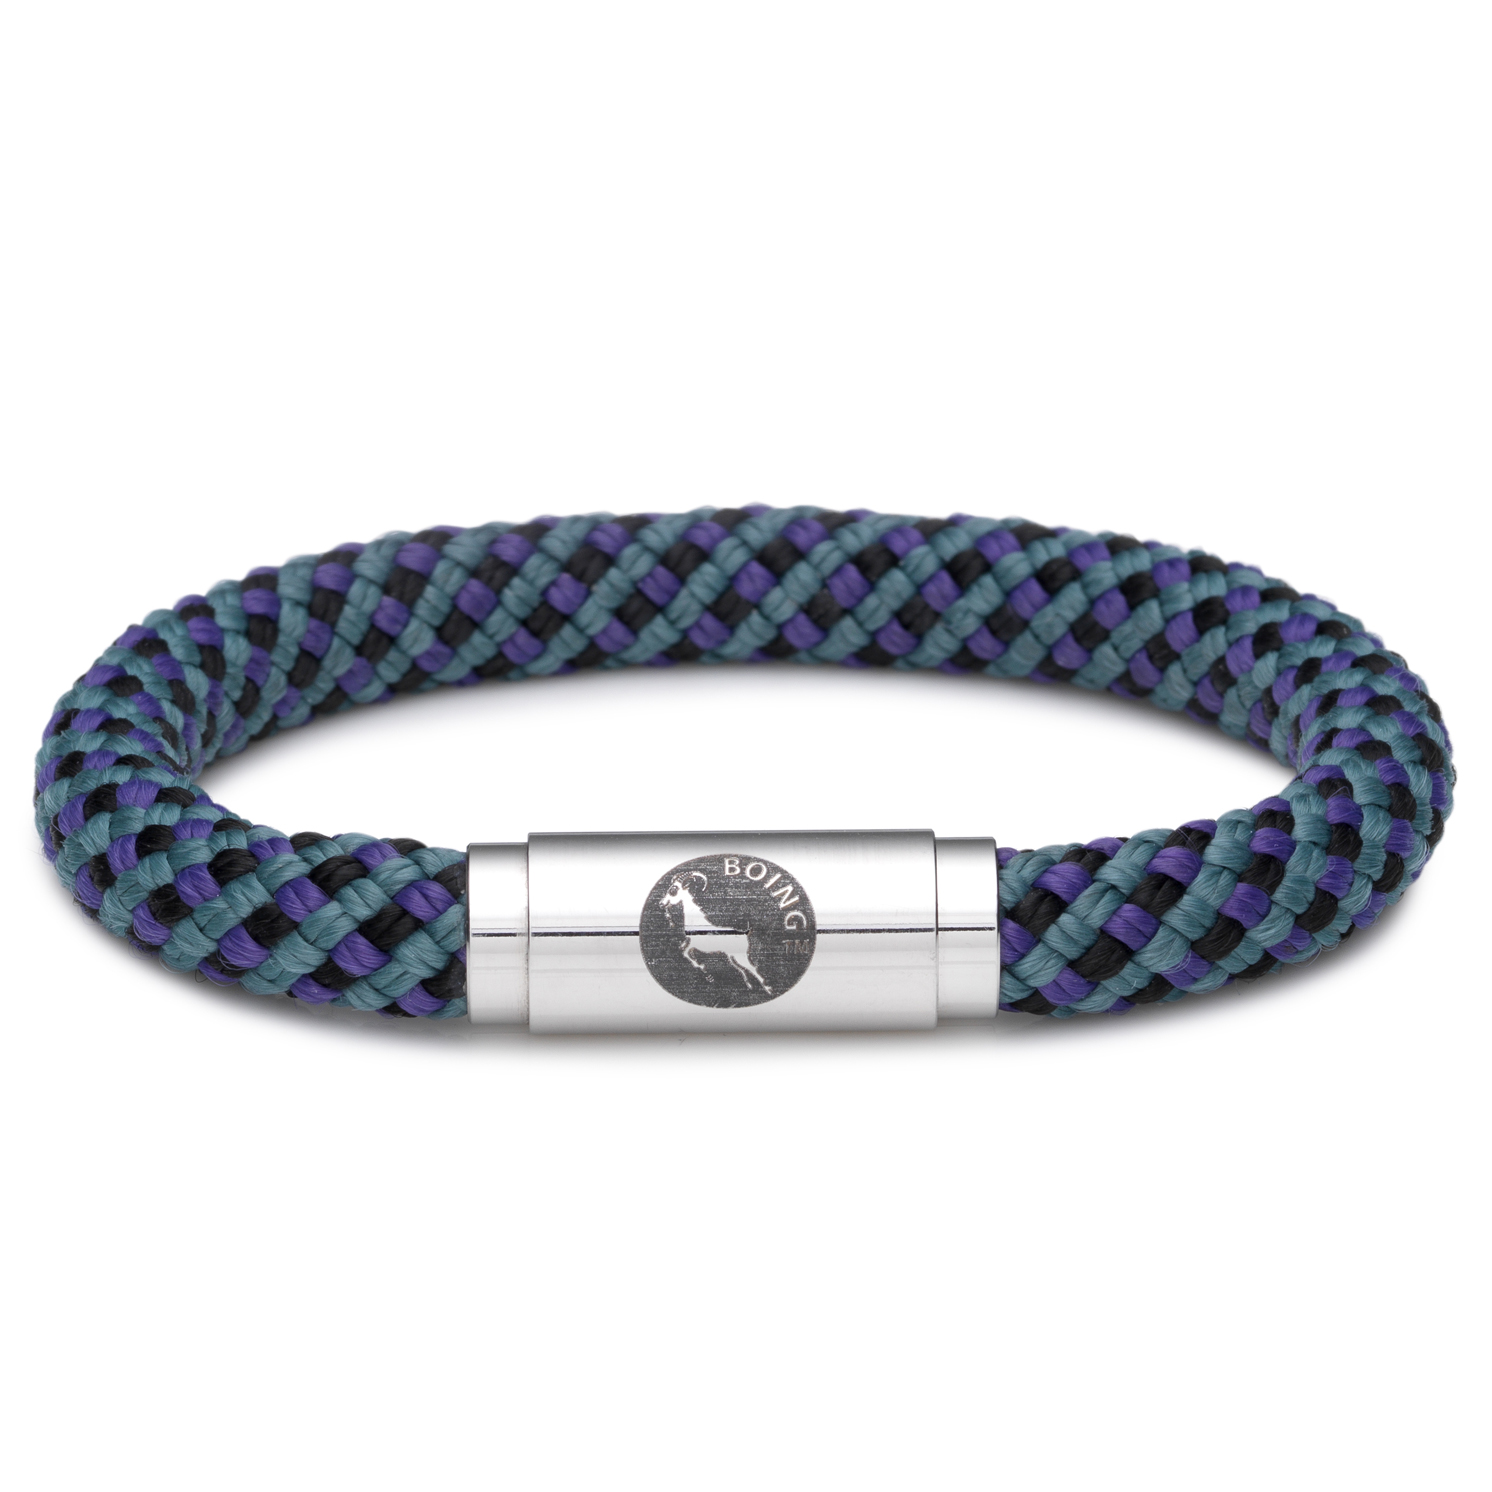 Boing – Middy XLarge Wristband in Teal